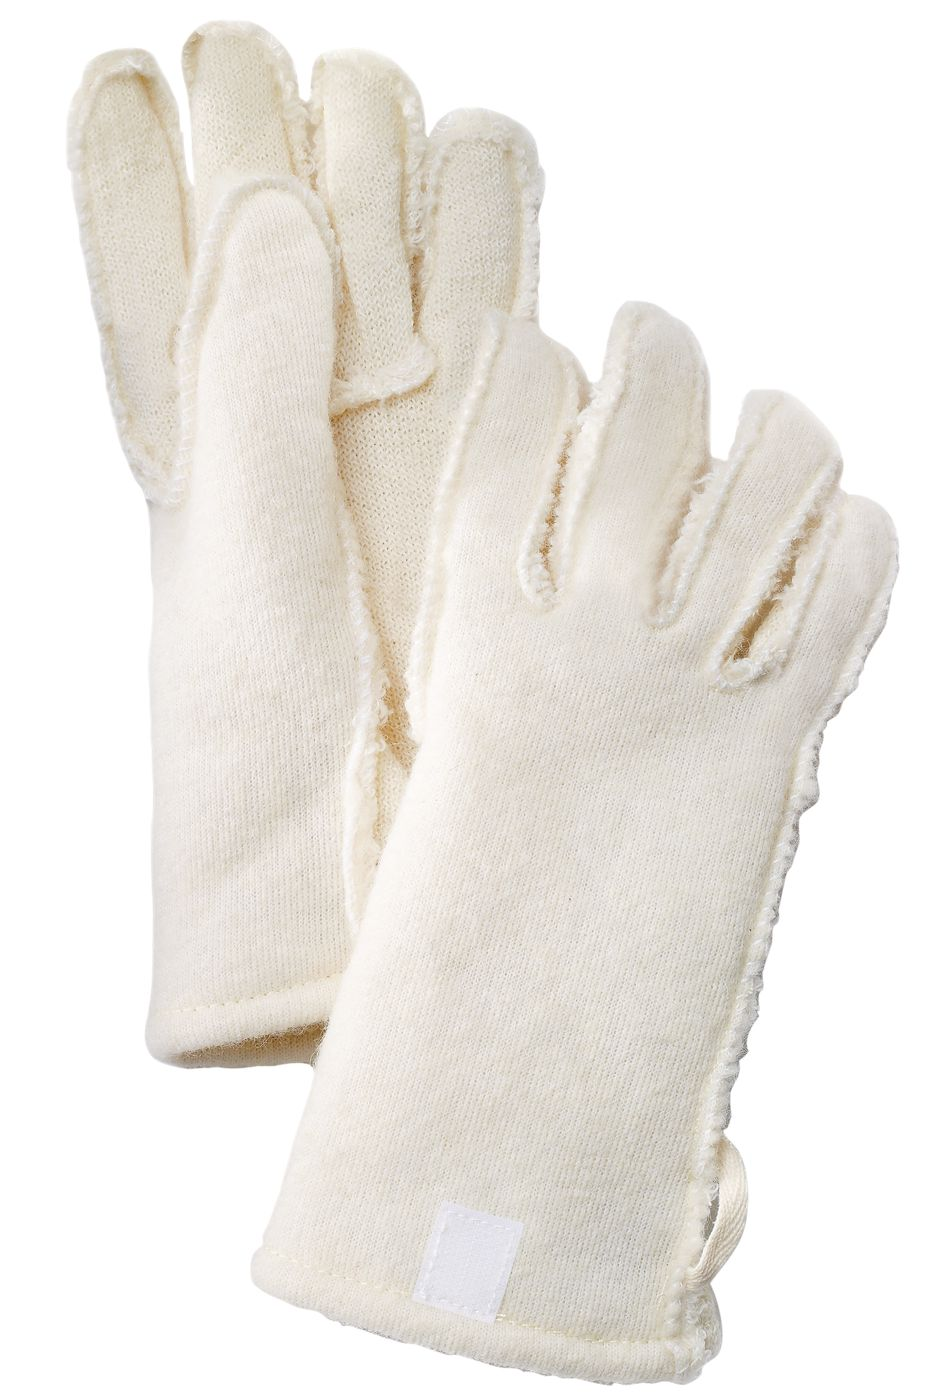 Hestra Wool Pile/Terry Liner Long – 5 finger Offwhite